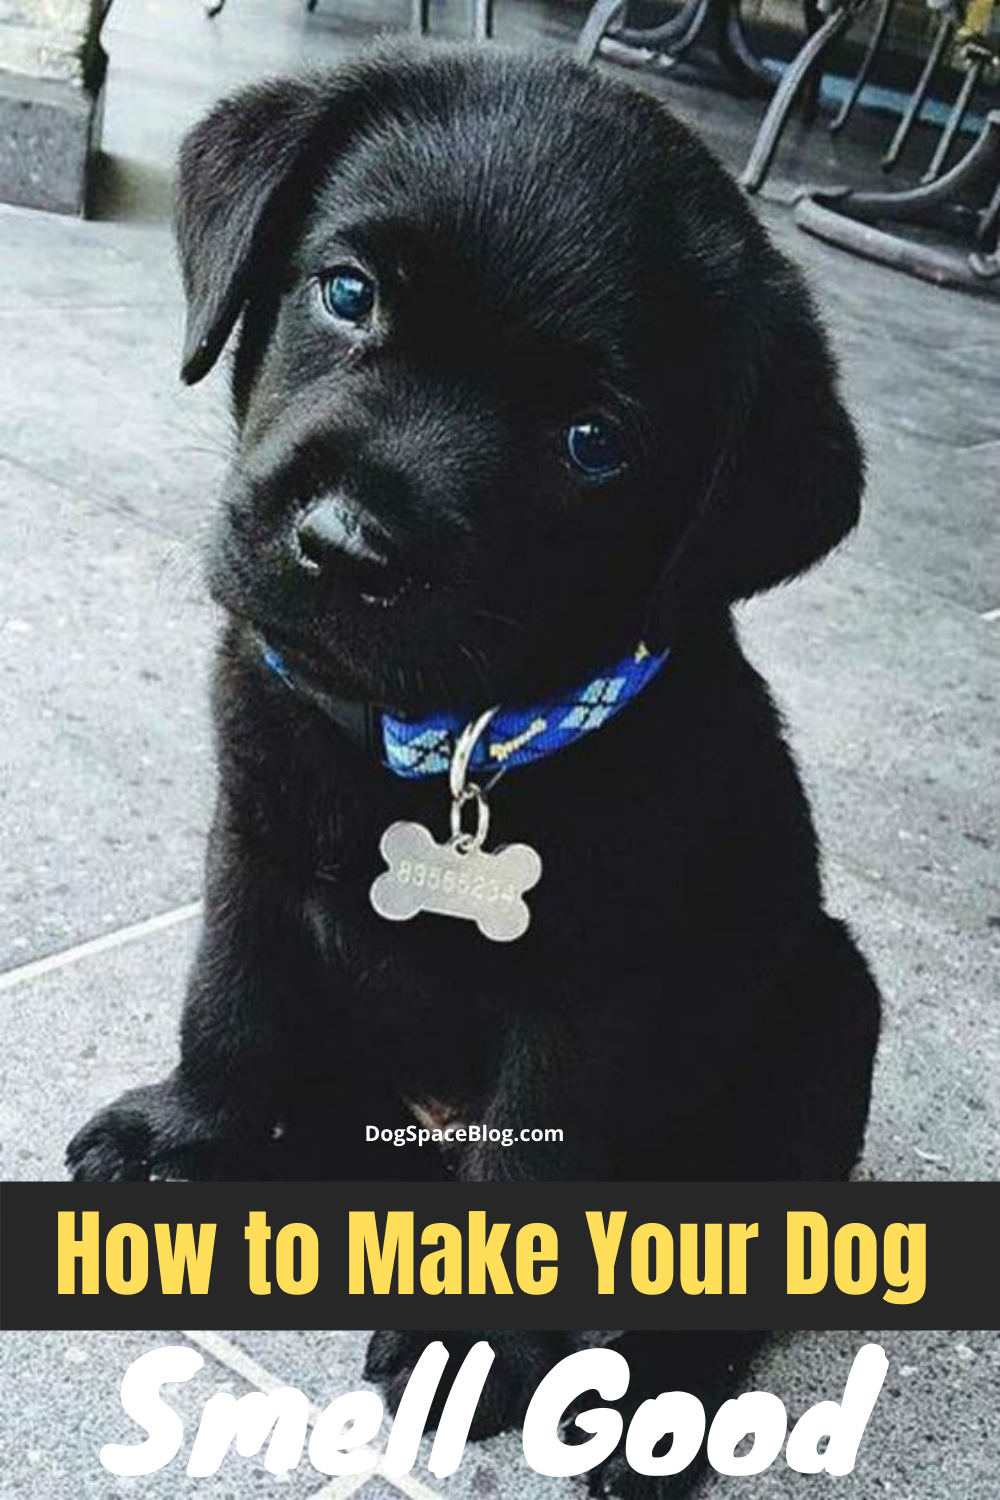 How To Make Your Dog Smell Good